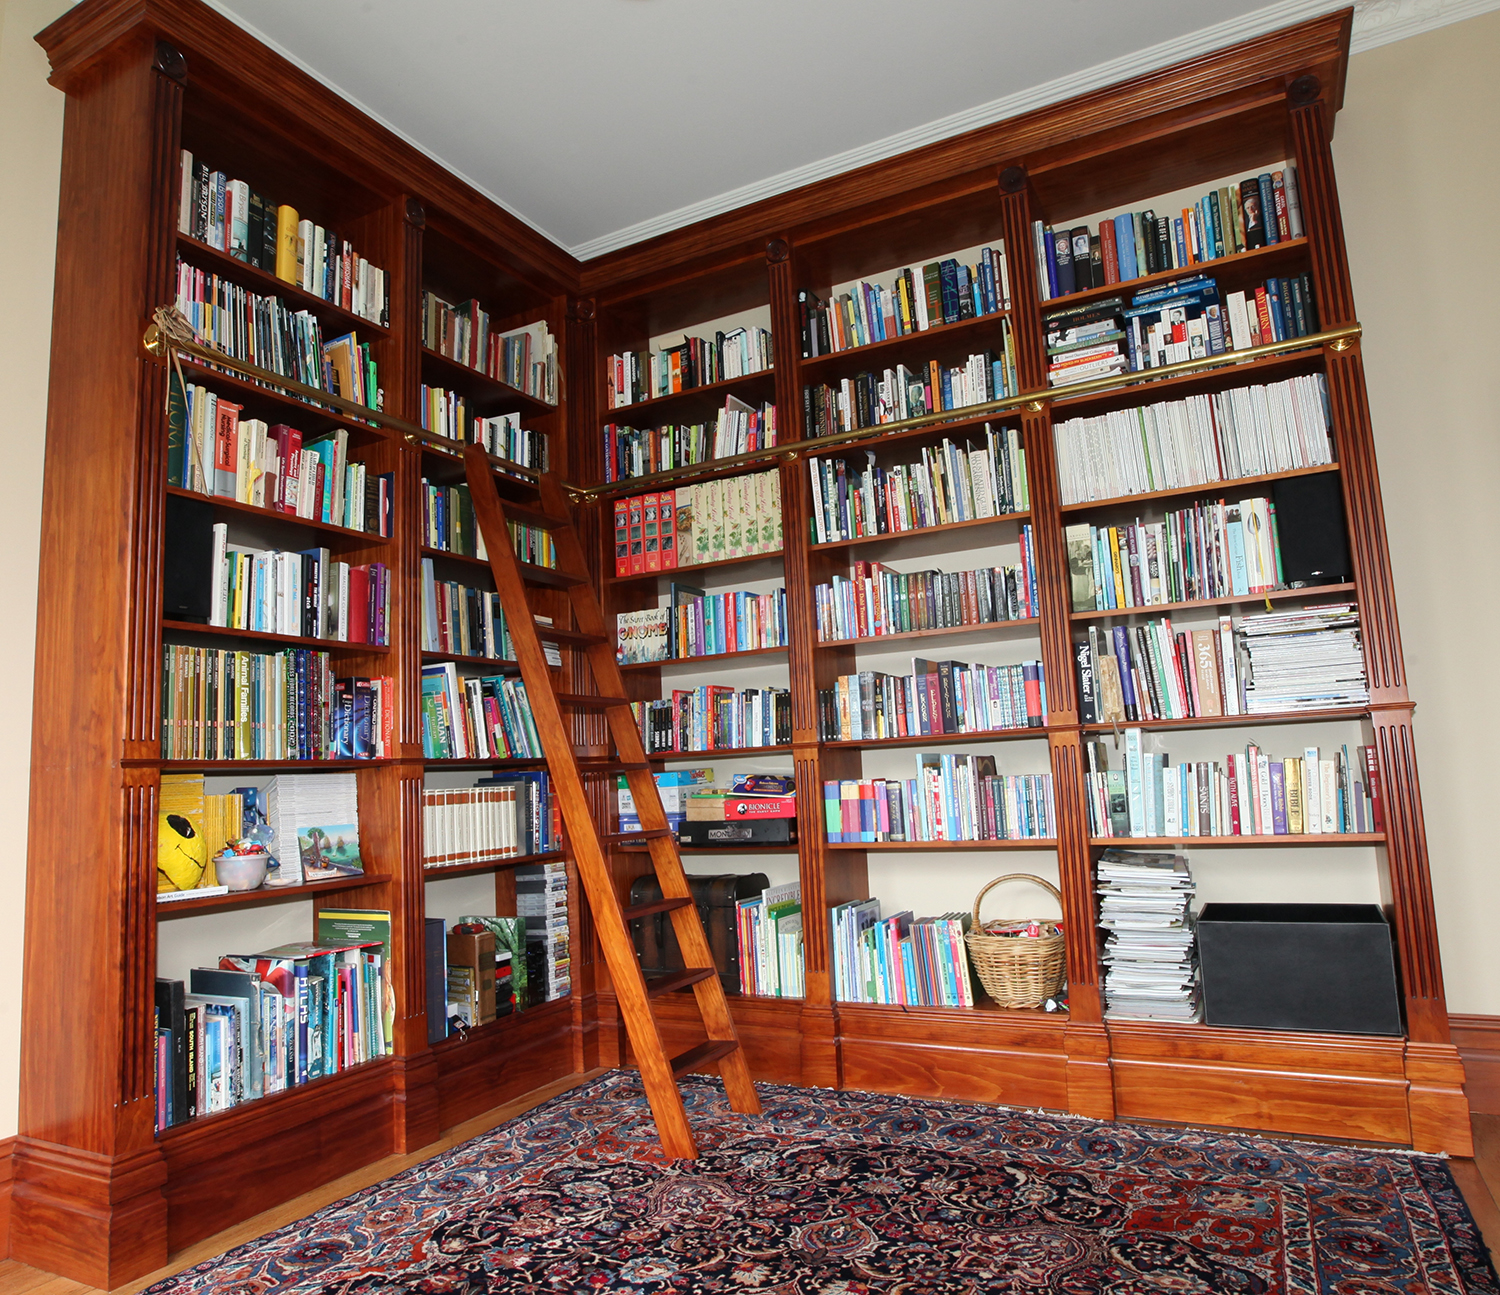 A beautiful floor to ceiling bookcase for a traditional country-style villa